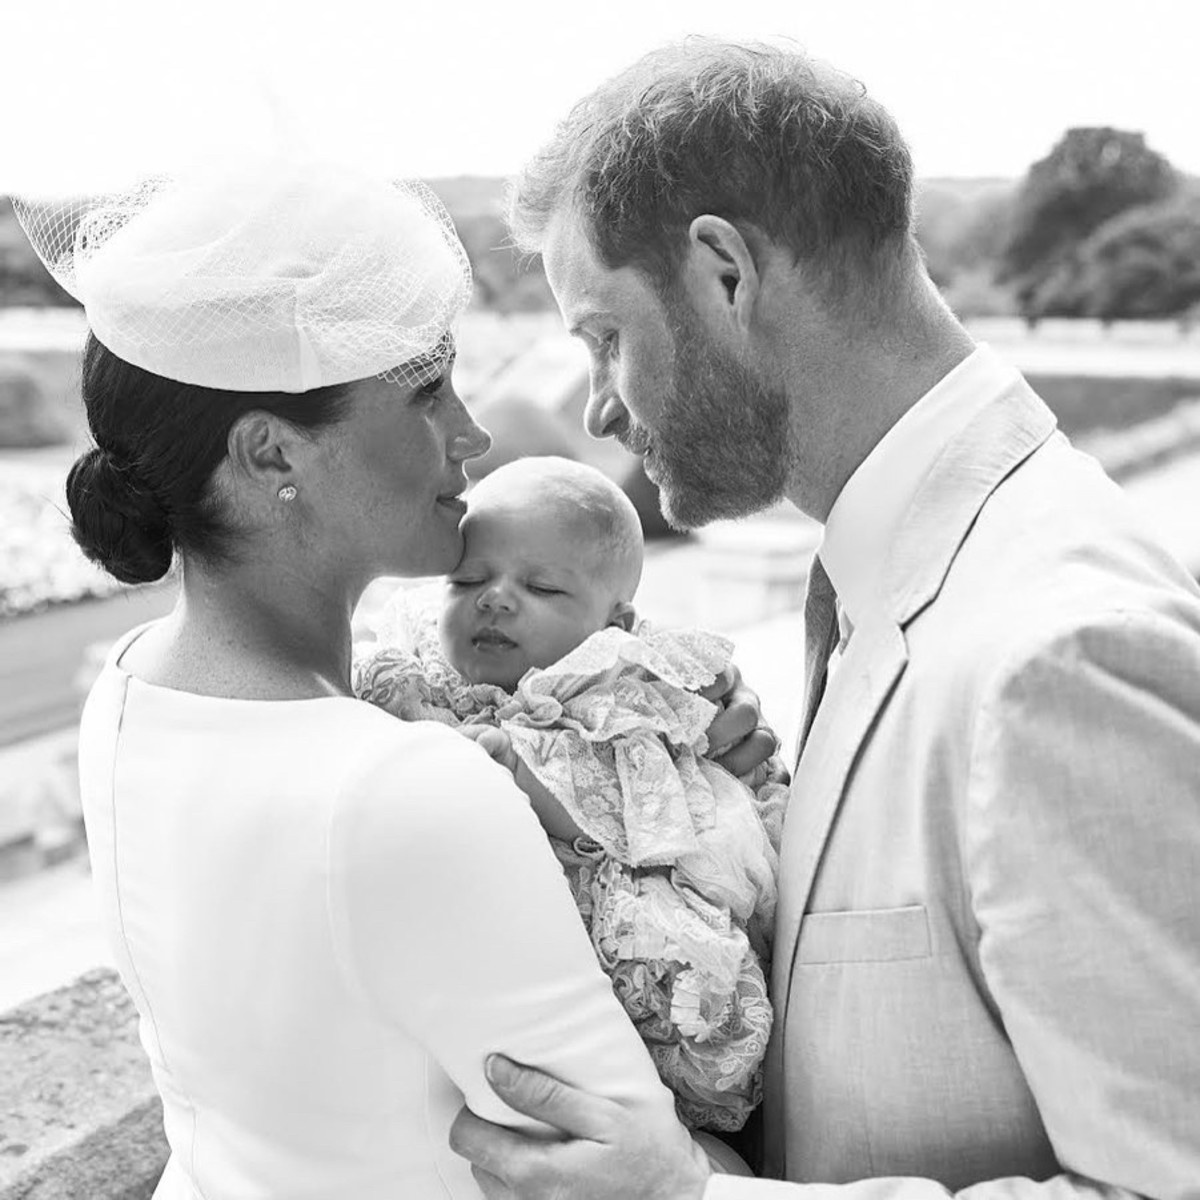 Prince Harry, Duke of Sussex, and Meghan, Duchess of Sussex holding their baby son, Archie Harrison Mountbatten-Windsor at Windsor Castle. Photo: Chris Allerton/Sussex Royal/AFP